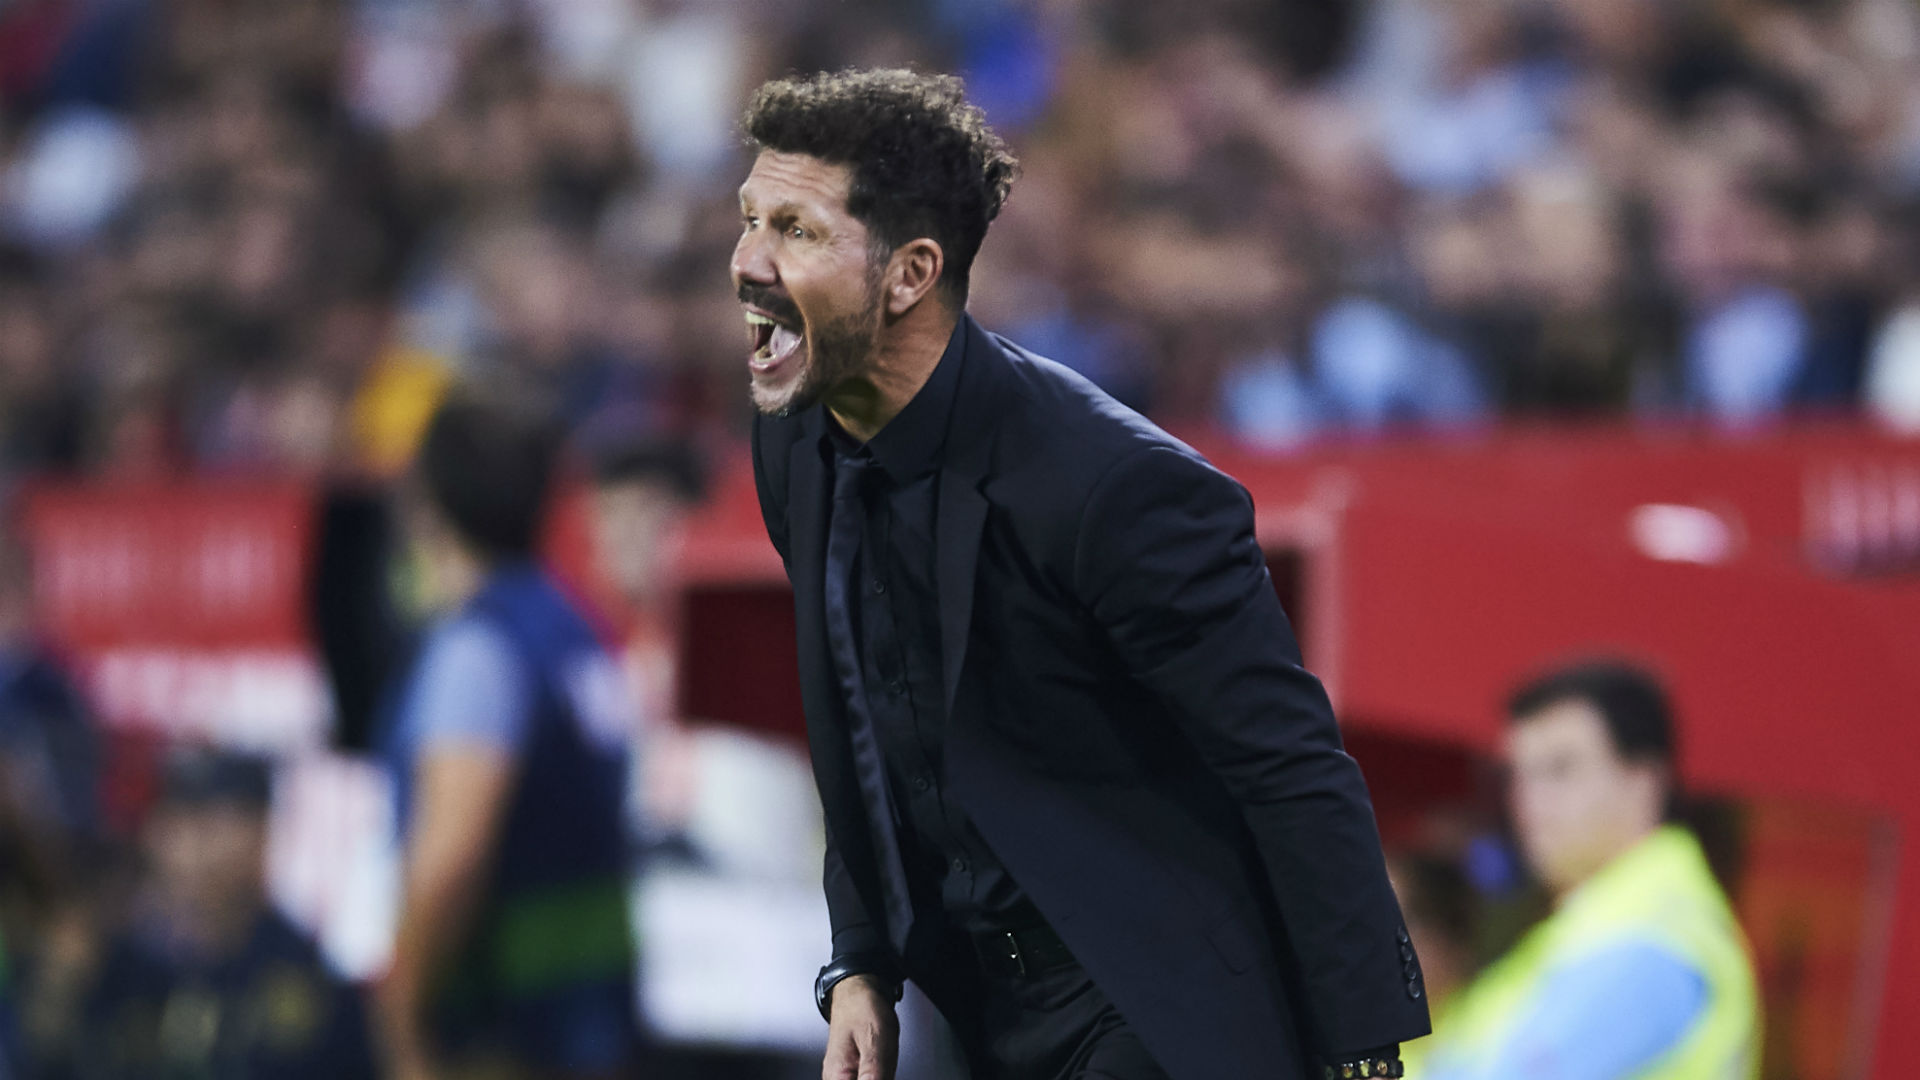 Atletico Madrid need greater consistency to mount LaLiga title challenge - Simeone